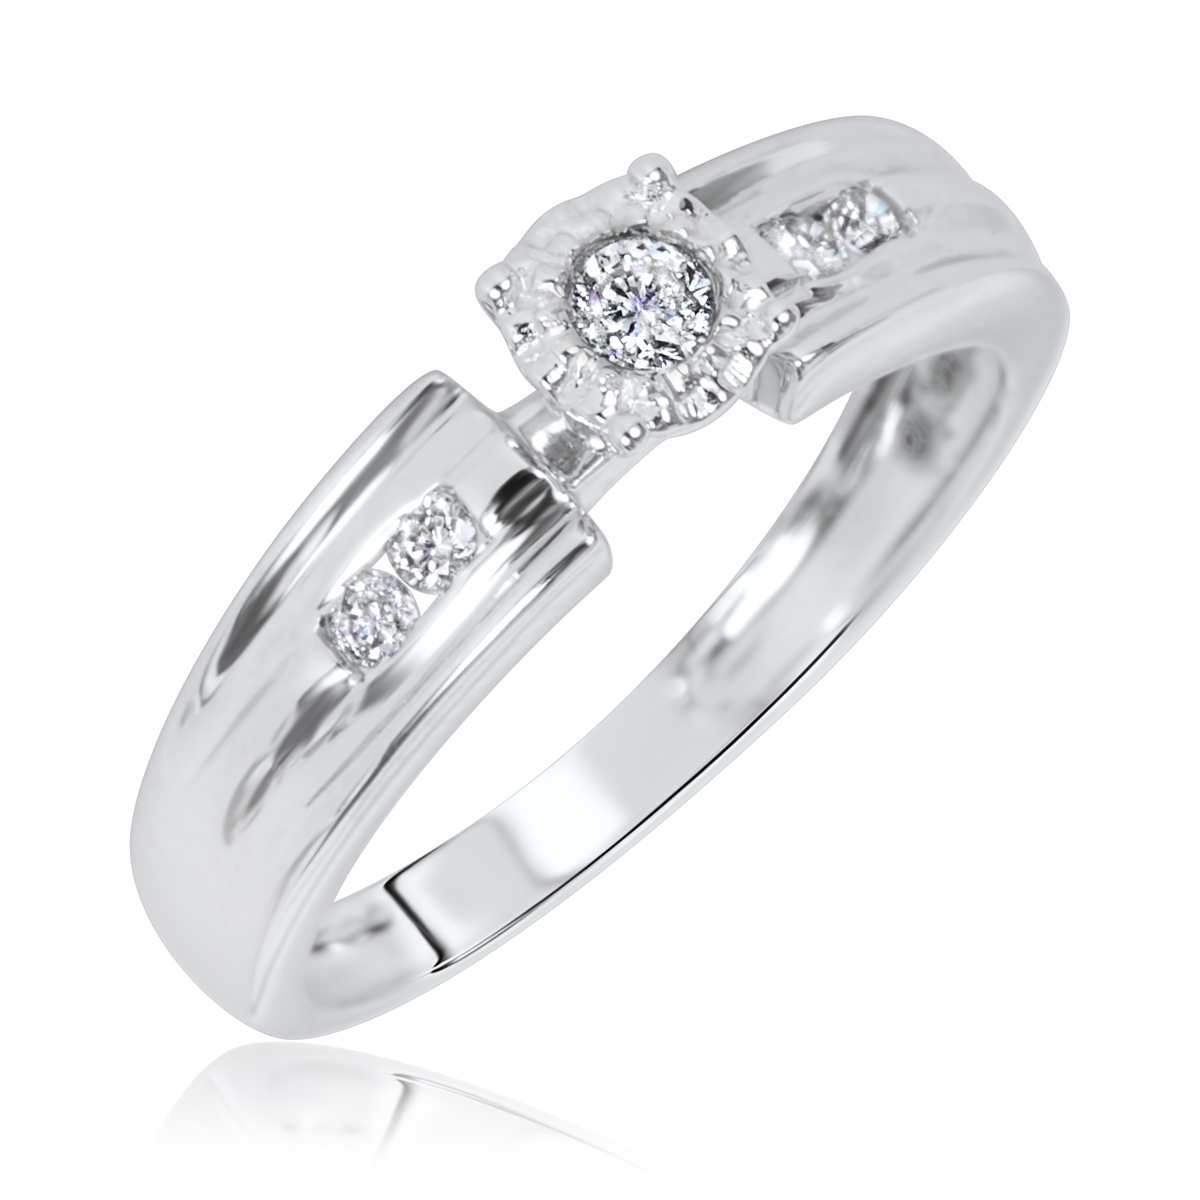 1/8 CT. T.W. Diamond Ladies' Engagement Ring 14K White Gold